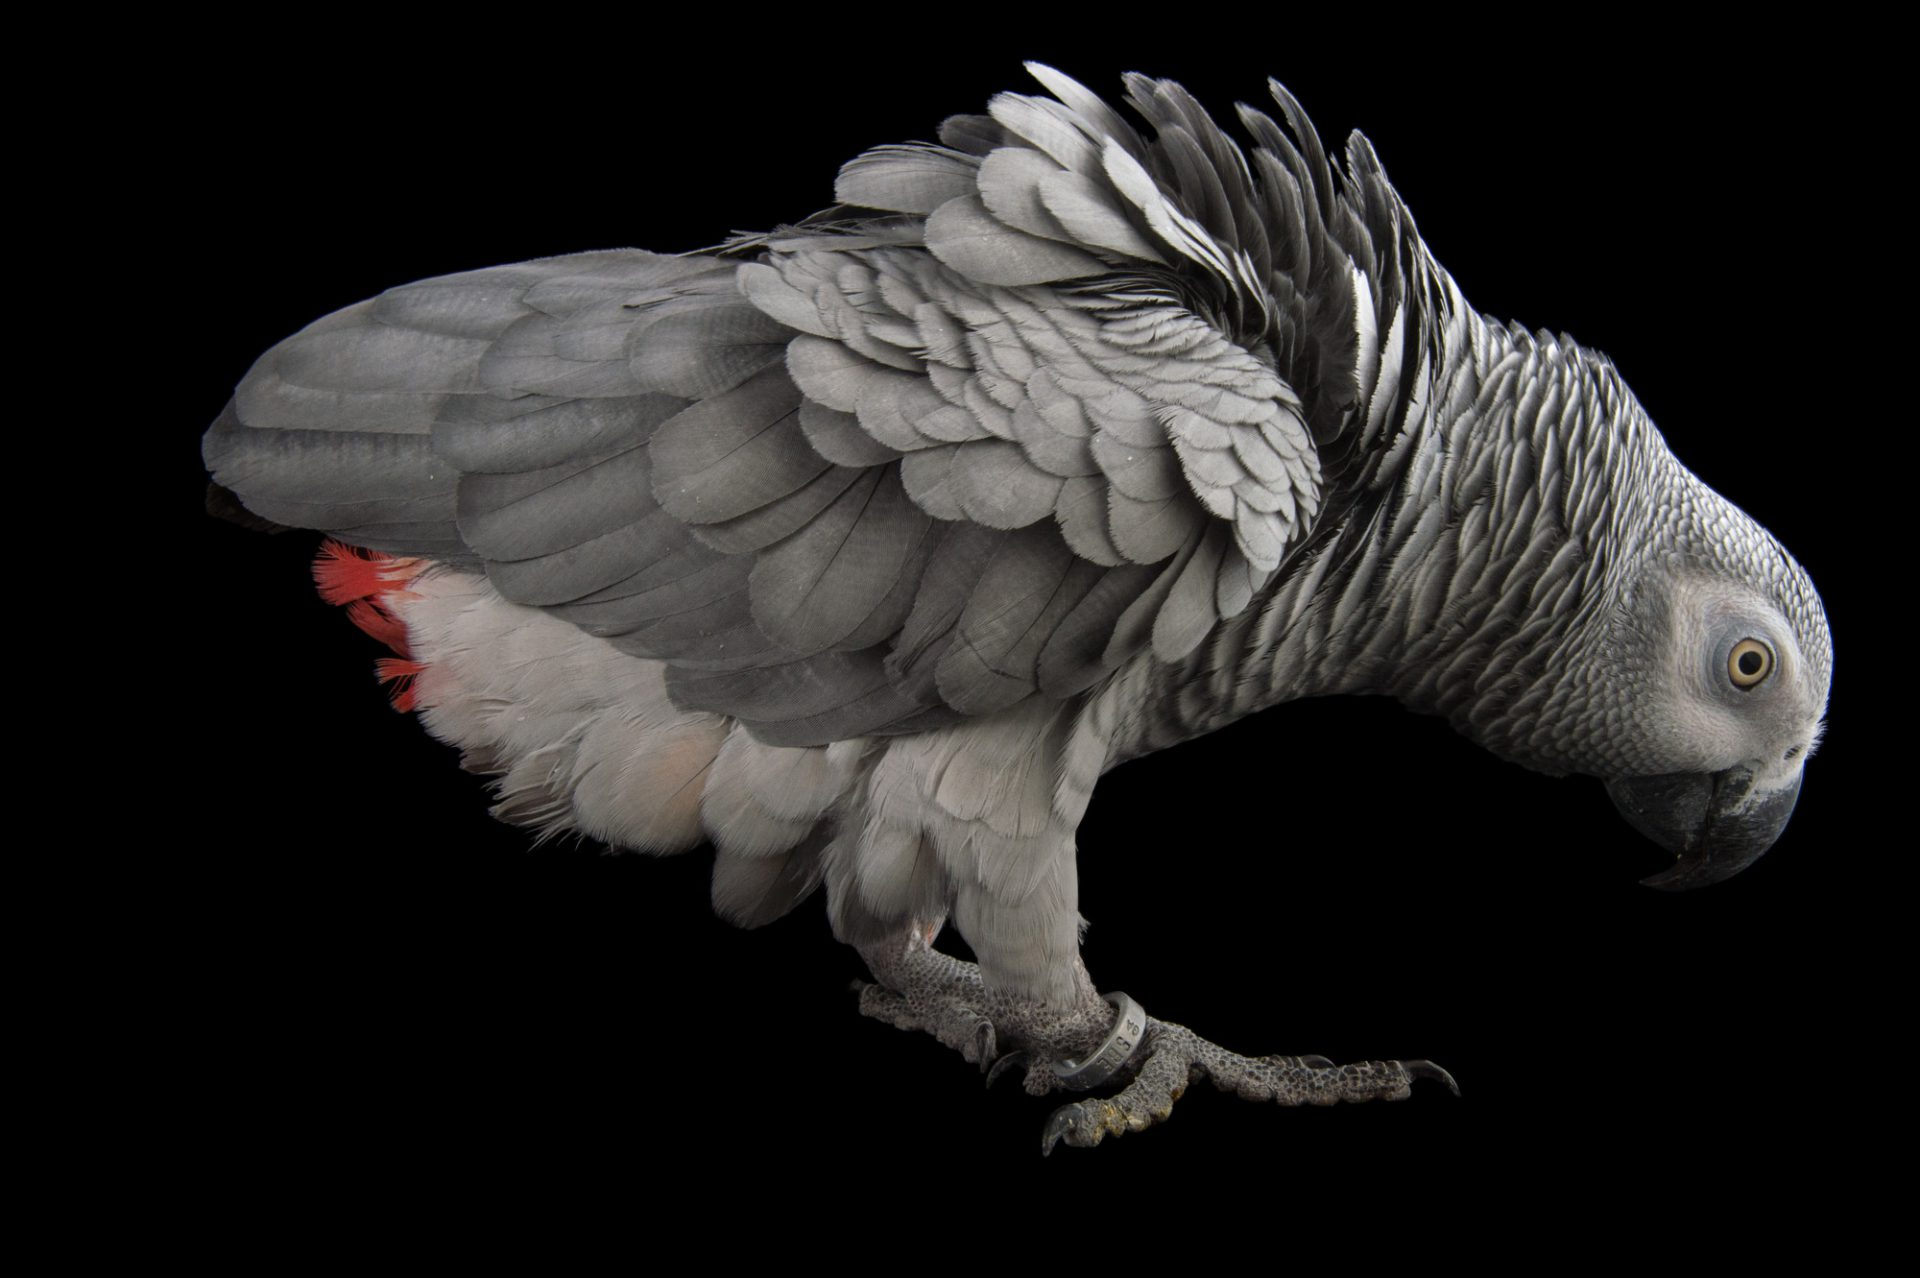 Picture of an endangered Congo grey parrot (Psittacus erithacus erithacus) at the Dallas Zoo. The bird's name is Murphy.